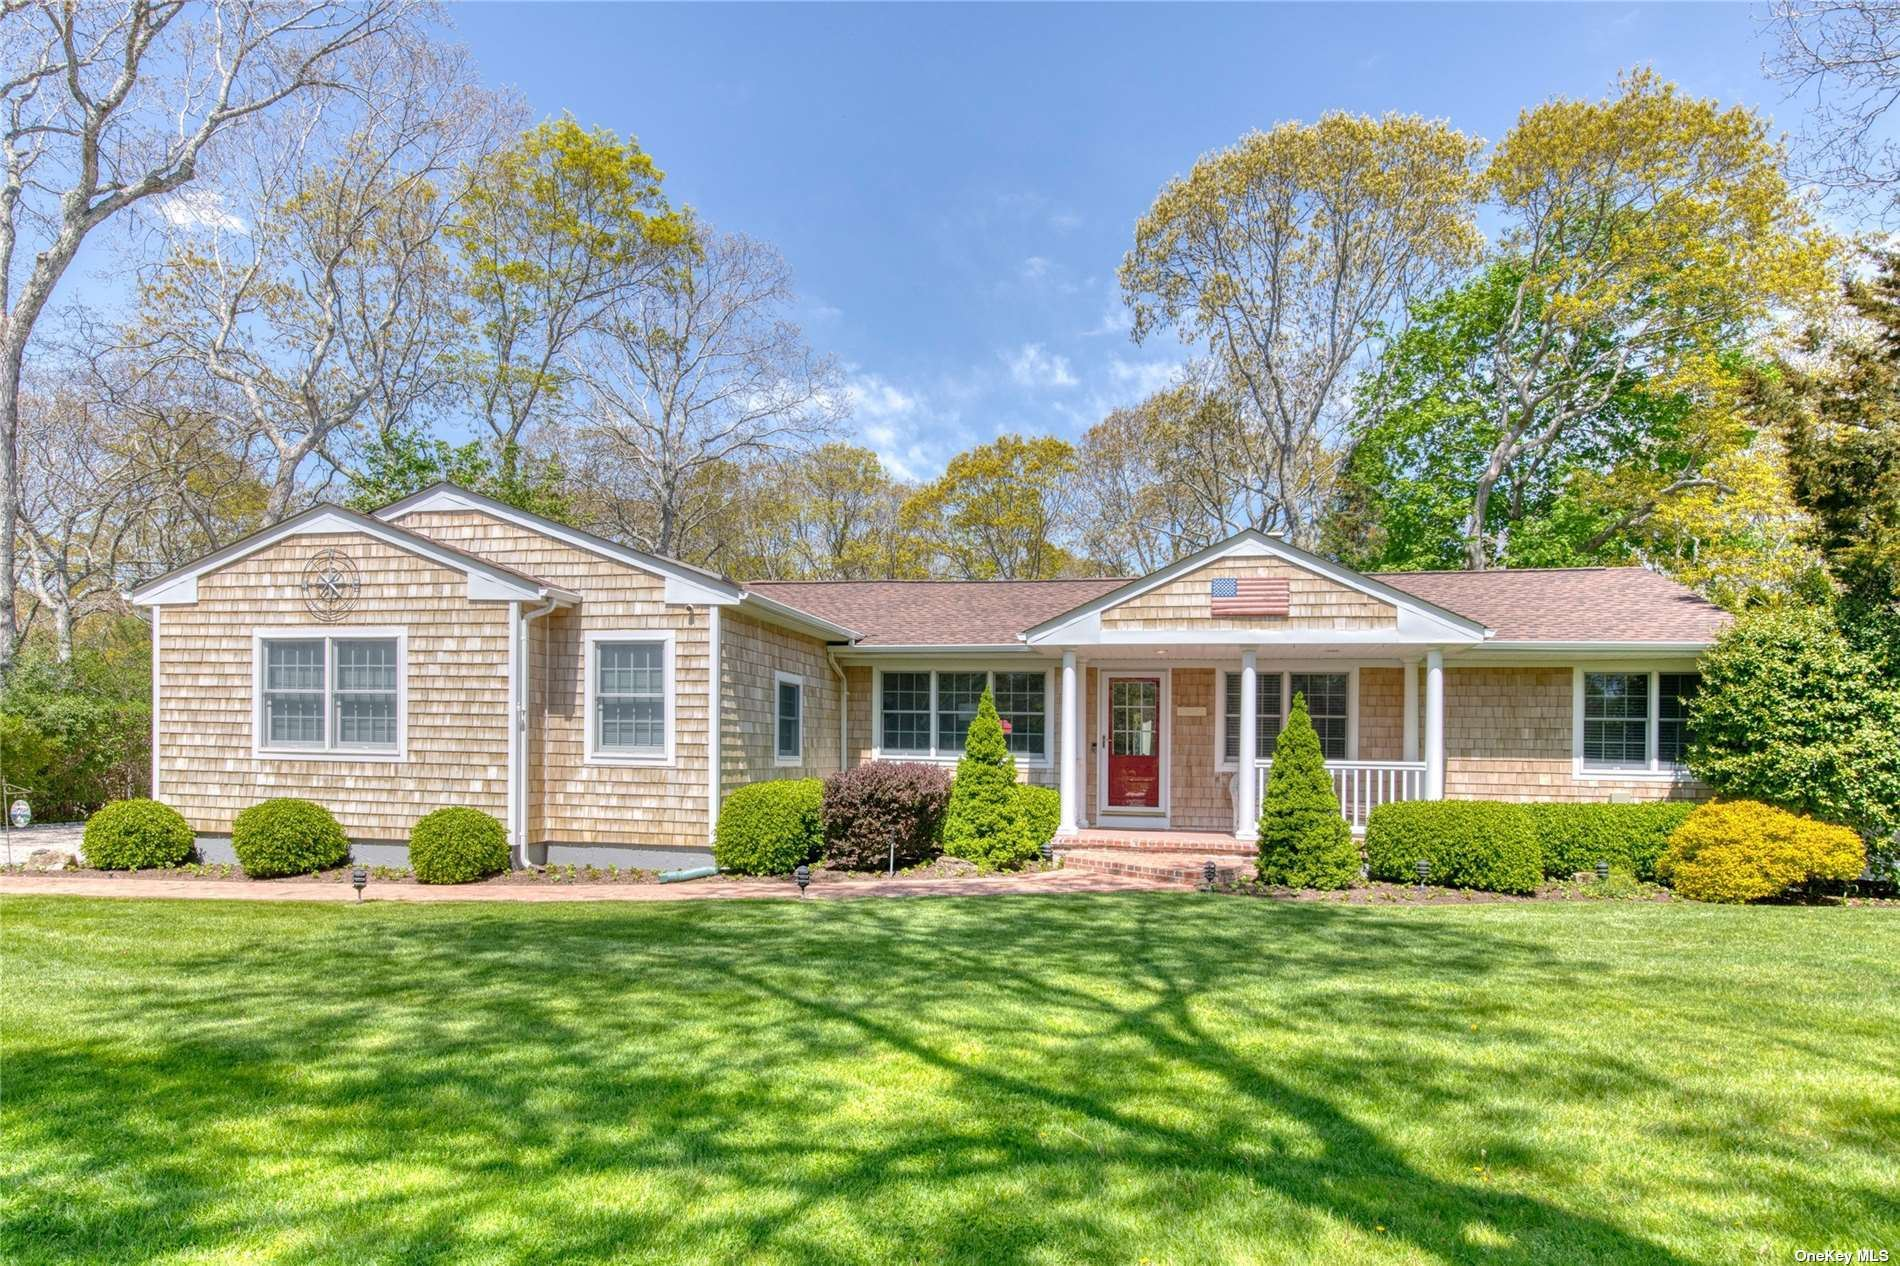 142 Brook Road, Westhampton Beach, NY 11978 - MLS#: 3310263